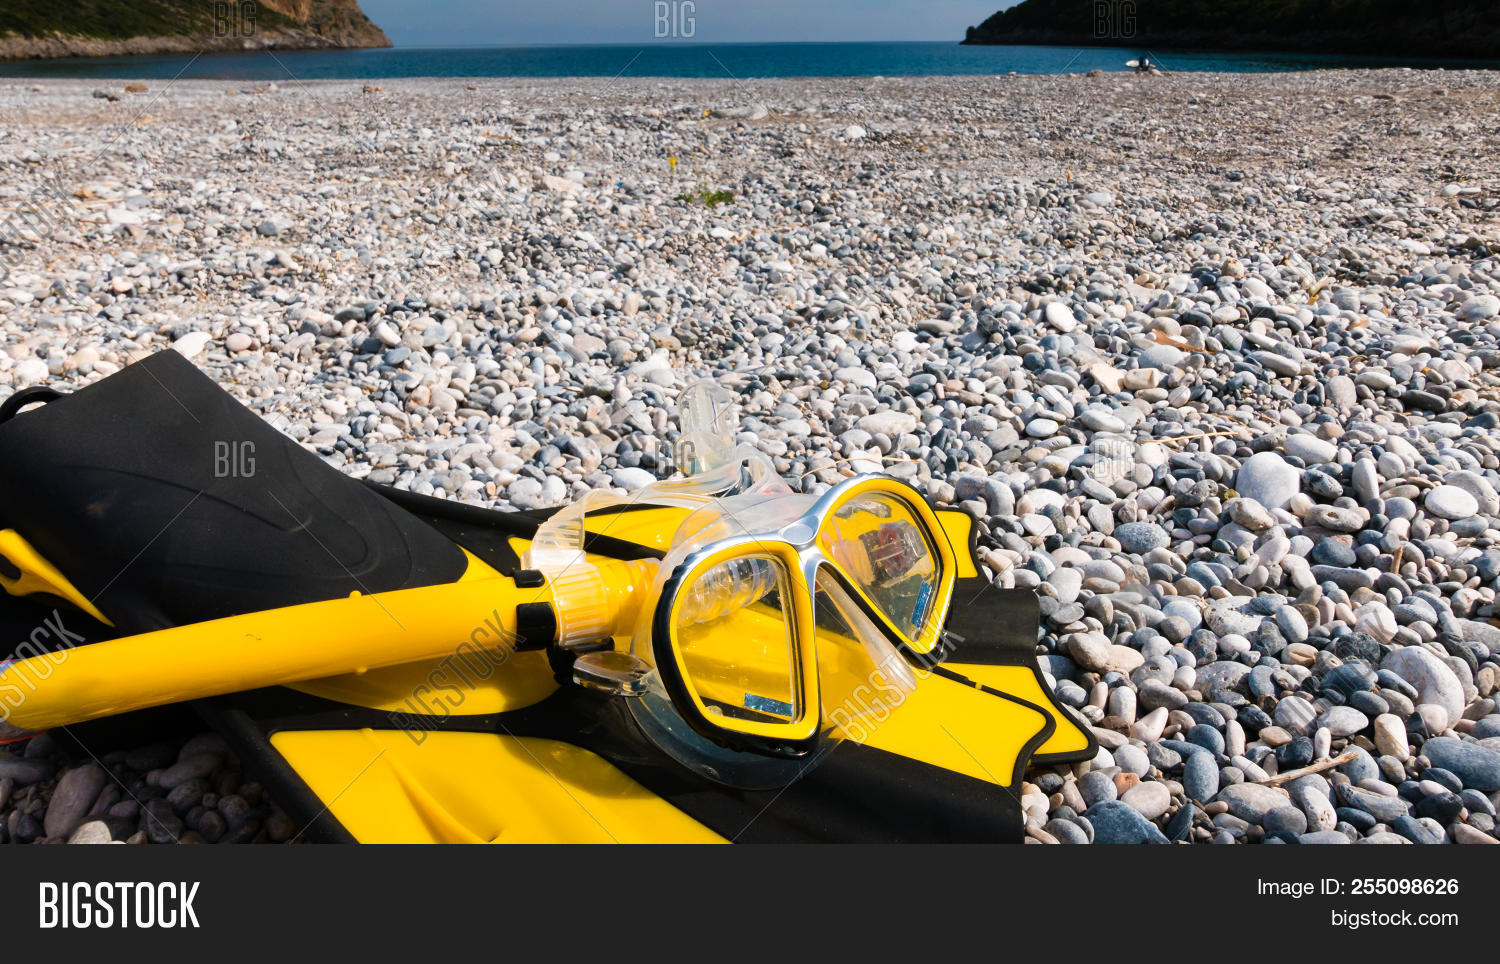 0054e5dec125e Snorkel Equipment Flippers And Snorkeling Mask Tube Lying On Stone Beach  Sea Shore. Summer Vacation